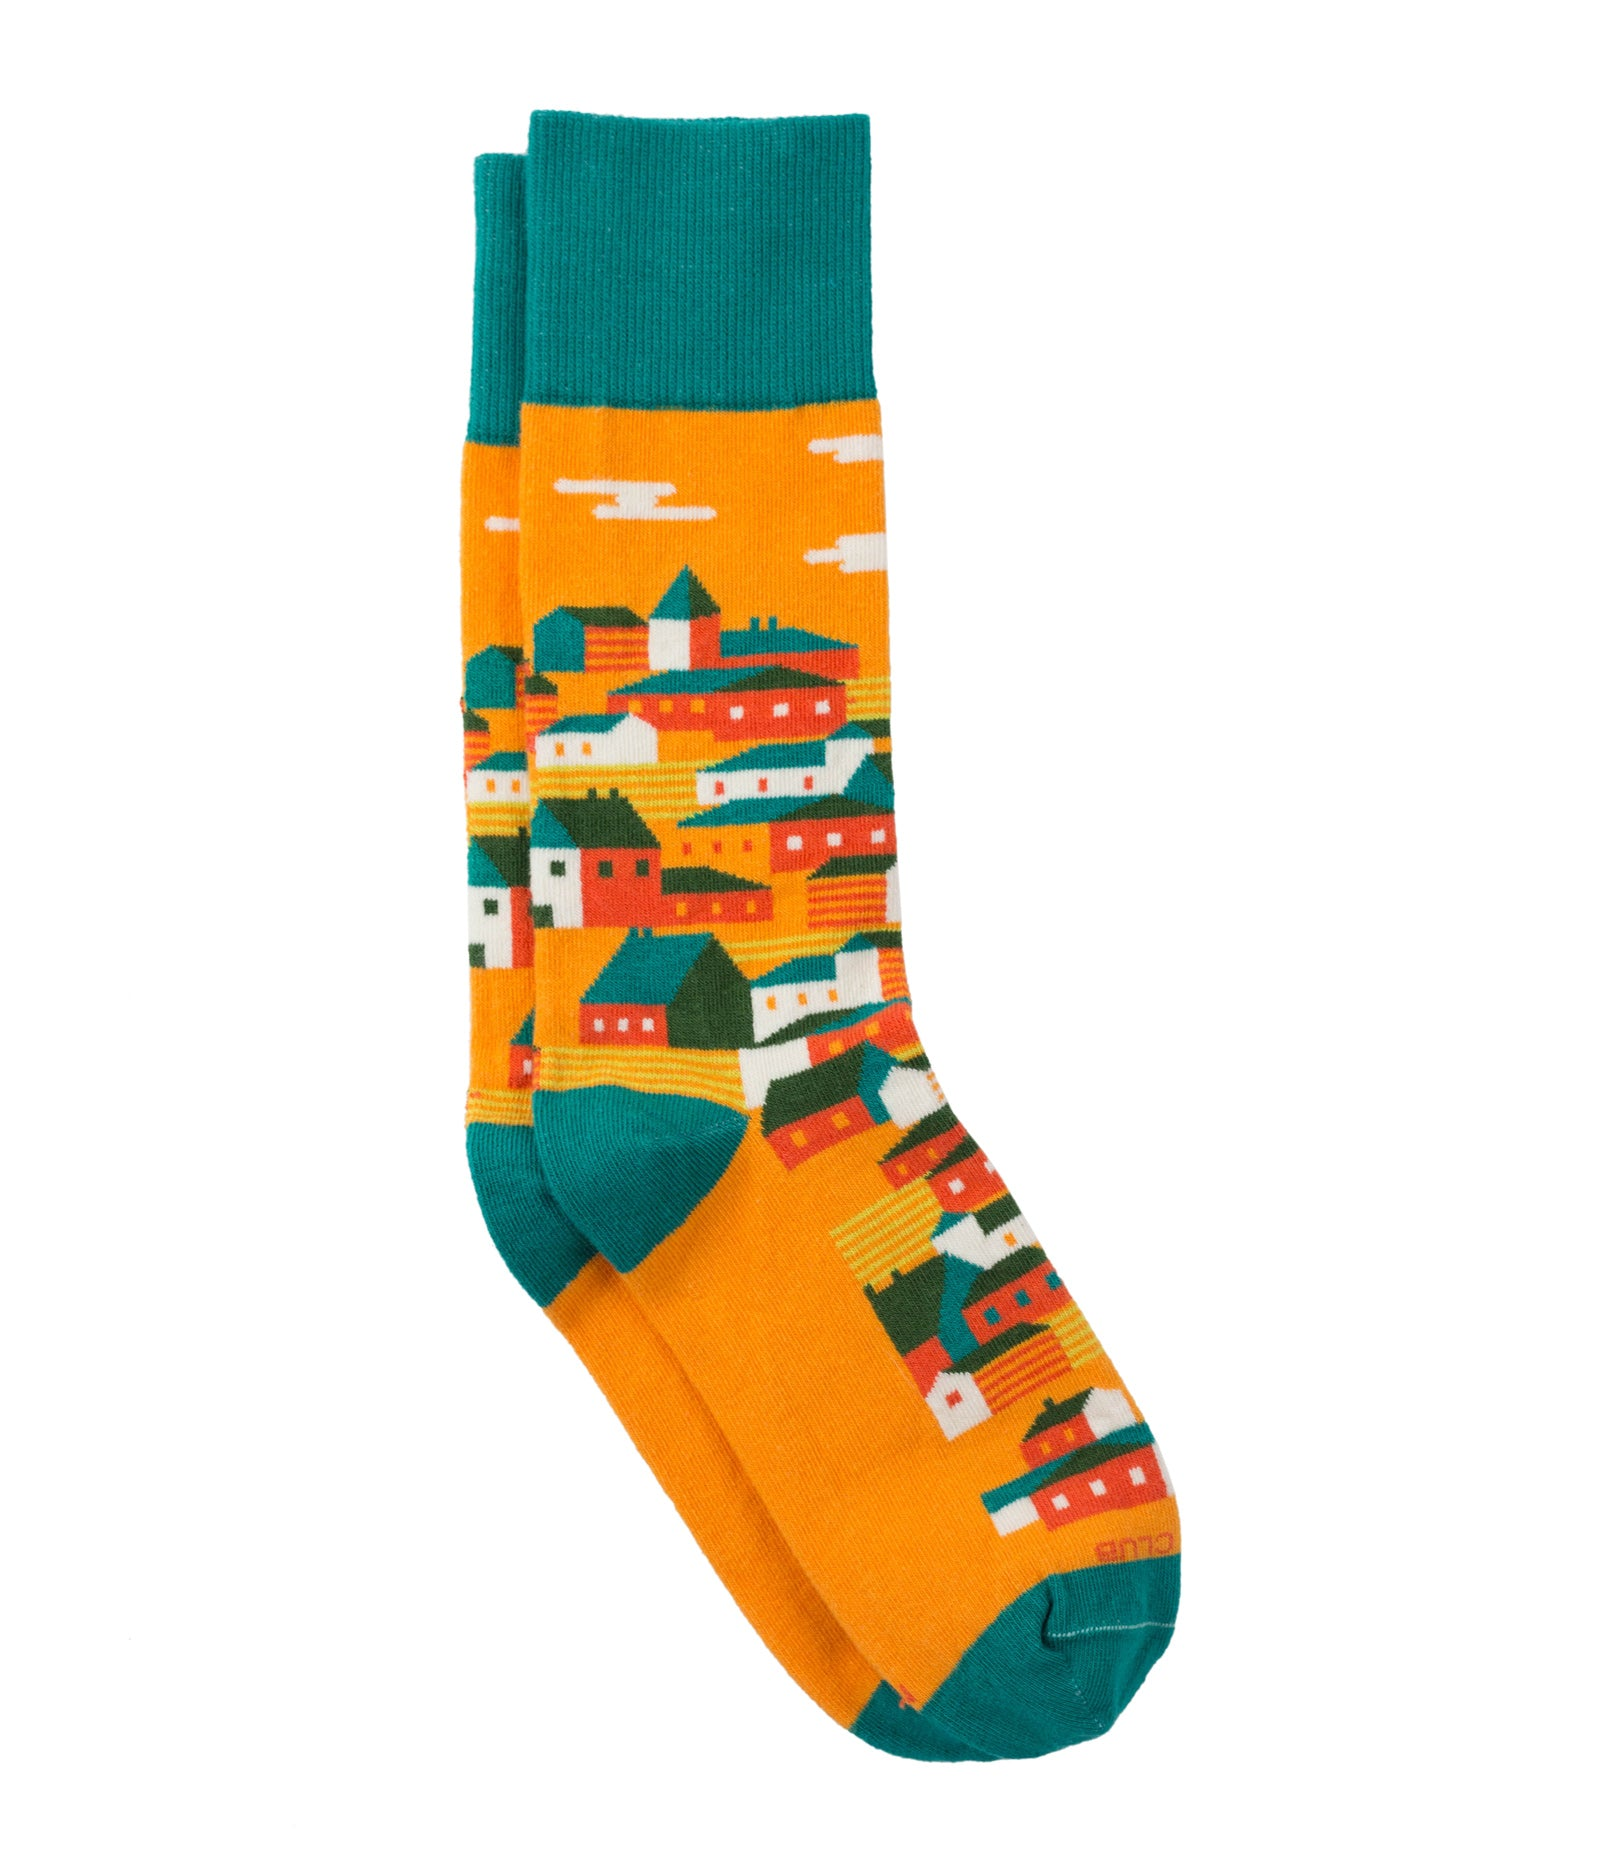 The Rogers - Clementine - Sock Club Store